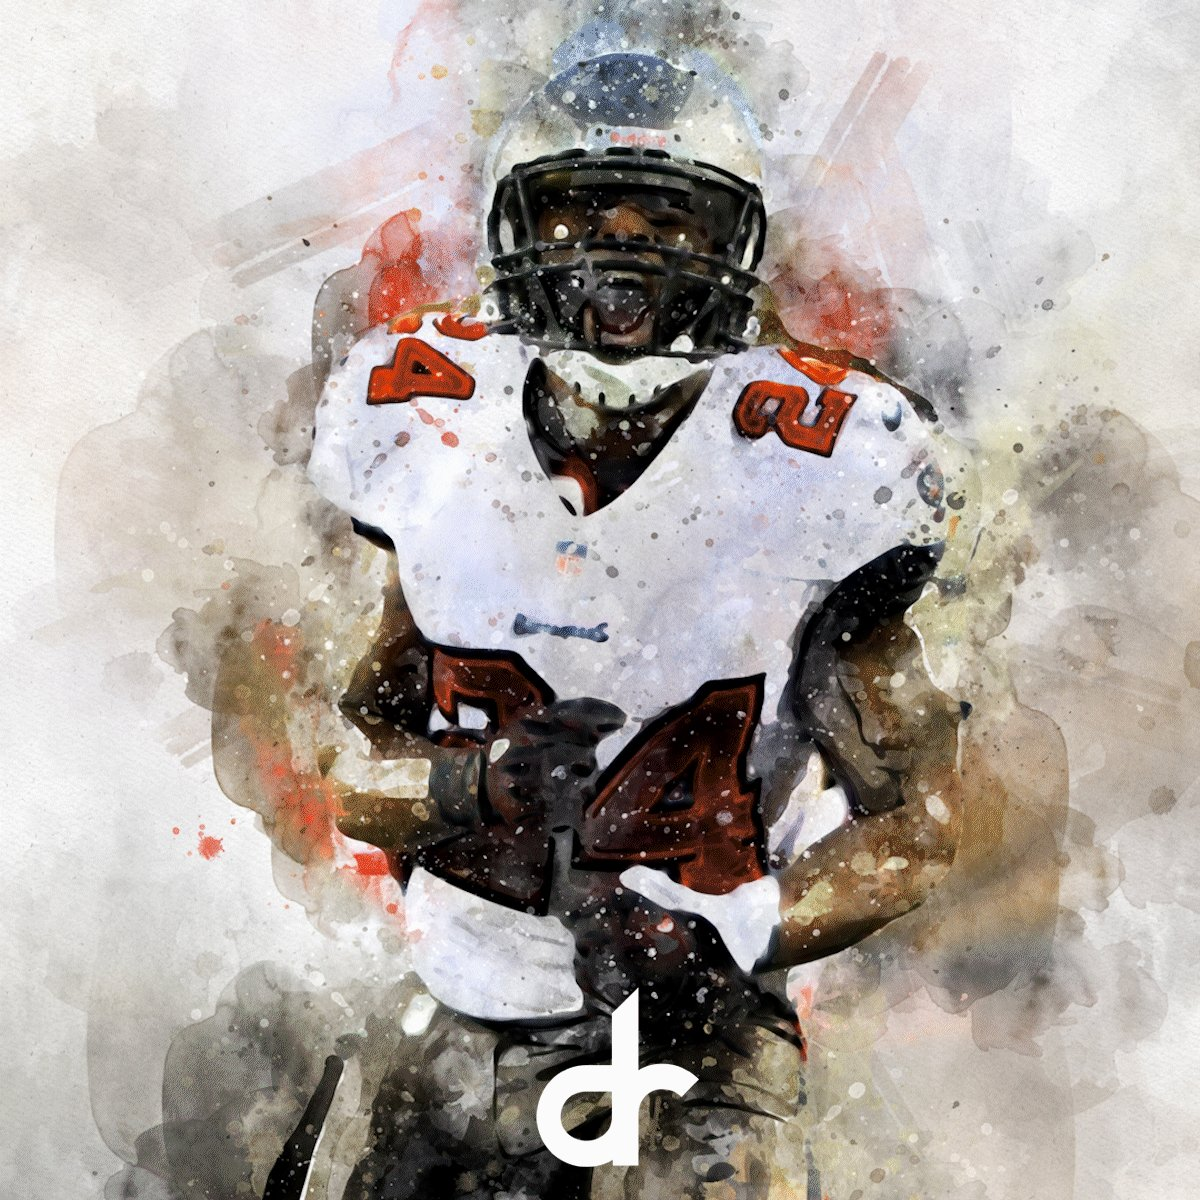 Art speaks where words are unable to explain... #art #followme #darrellerevis #revisisland